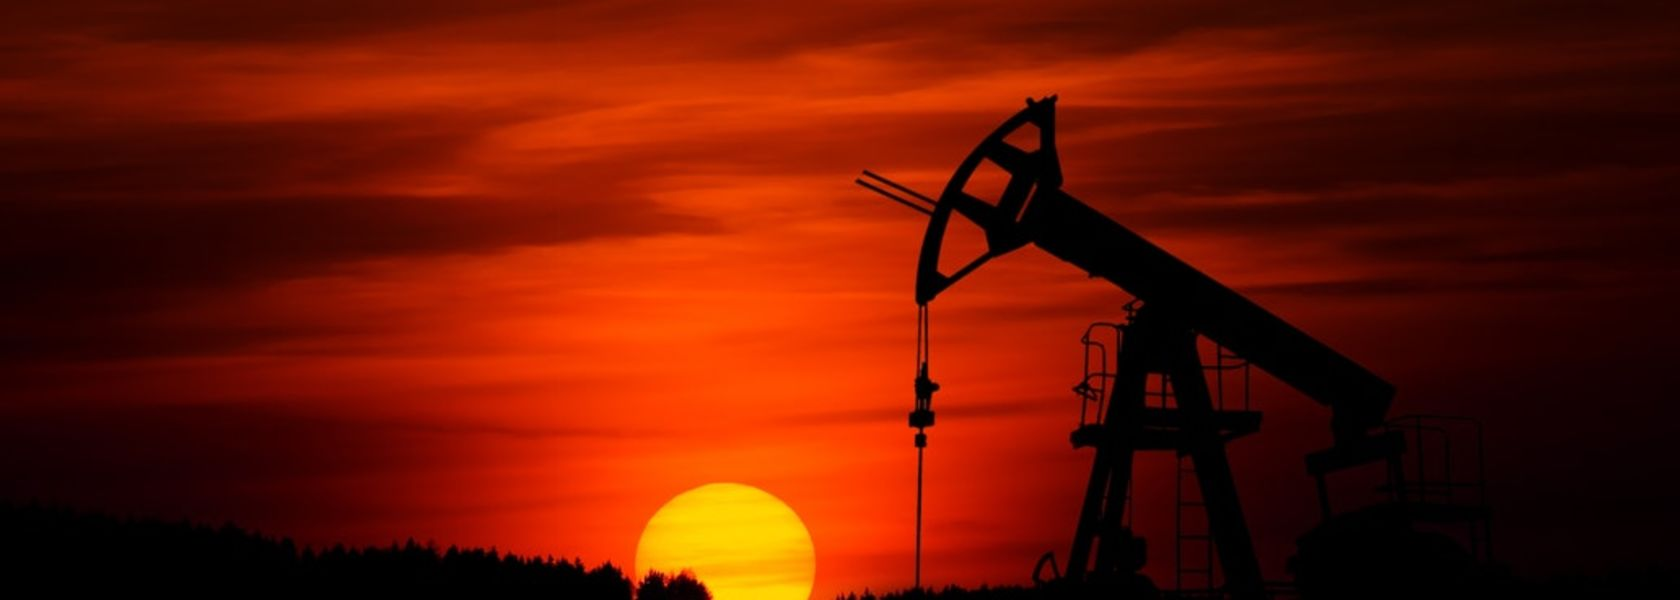 Oil and gas outlook is broadly stable: S&P